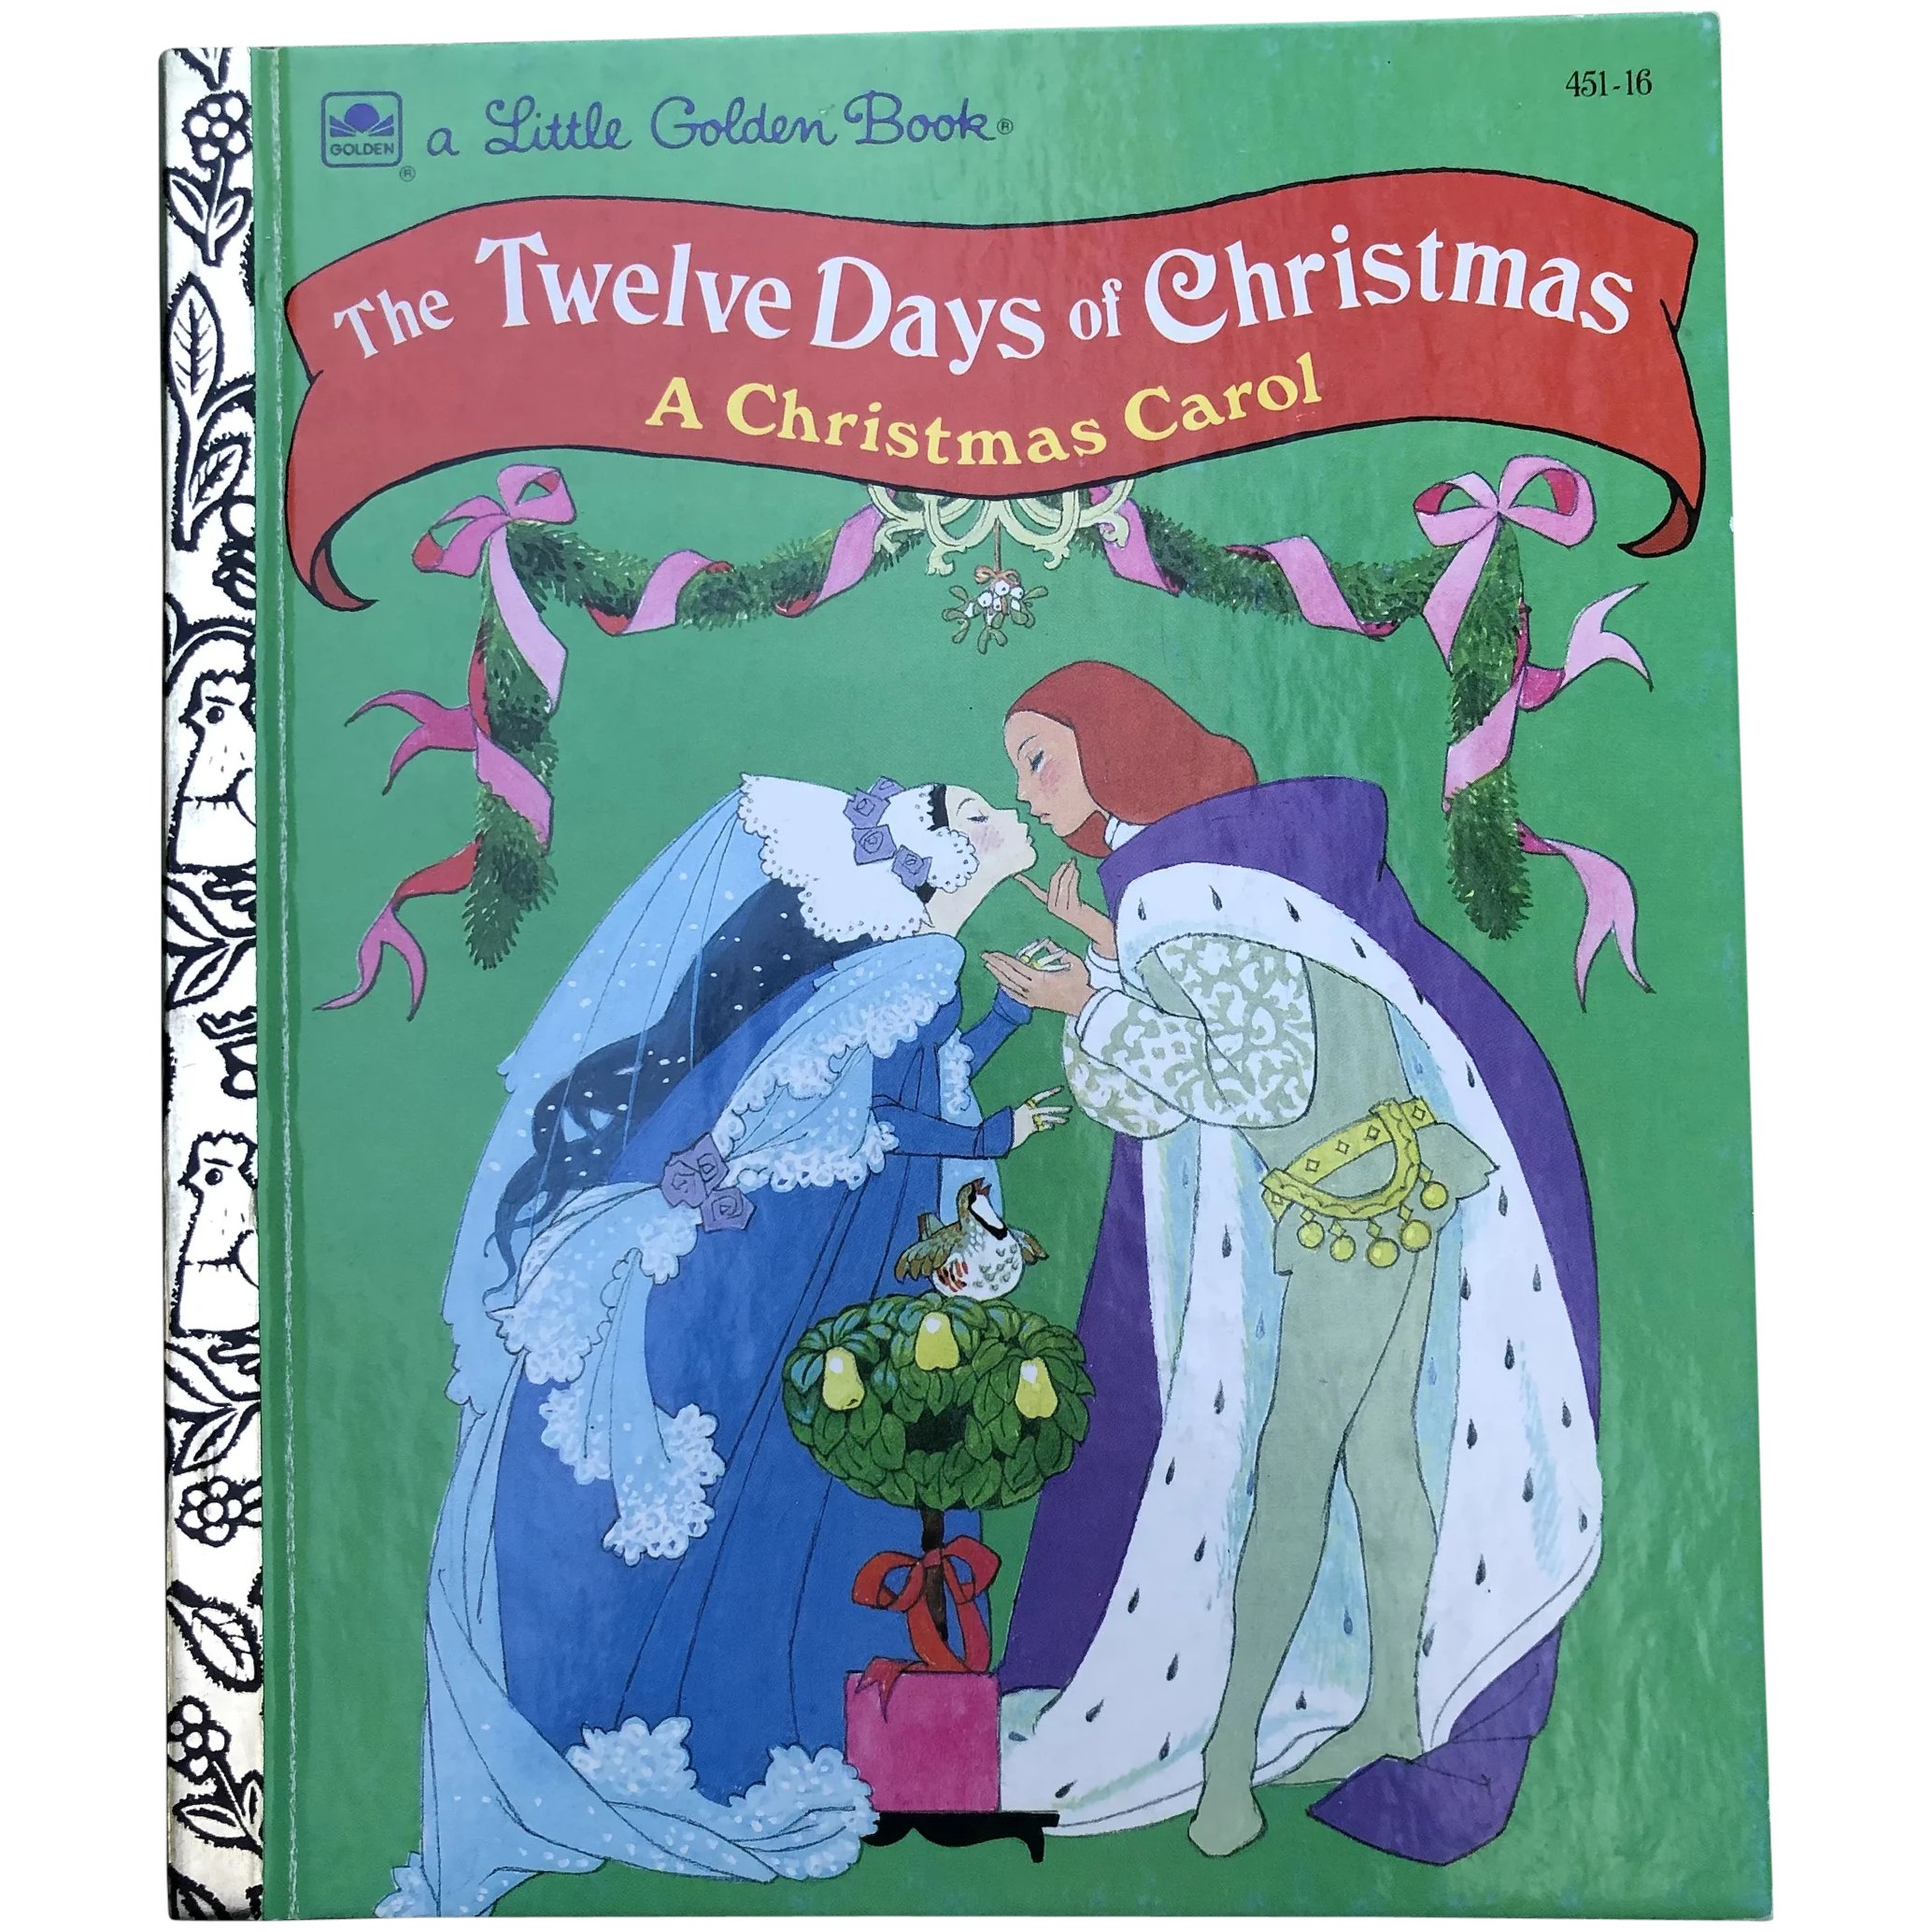 Twelve Days Of Christmas Book.1992 First Edition The Twelve Days Of Christmas Little Golden Book